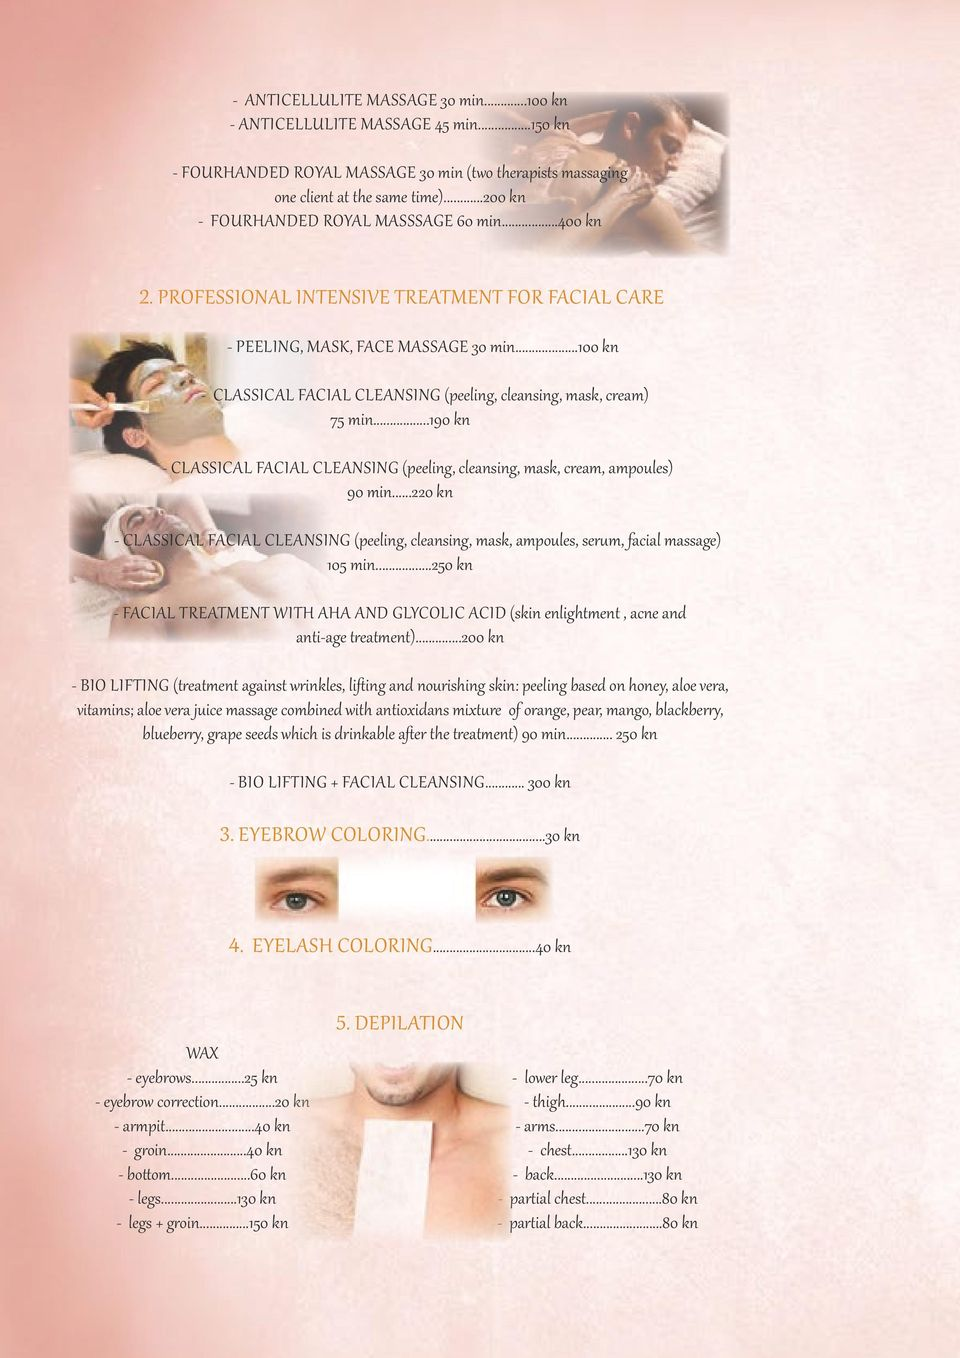 ..100 kn - CLASSICAL FACIAL CLEANSING (peeling, cleansing, mask, cream) 75 min...190 kn - CLASSICAL FACIAL CLEANSING (peeling, cleansing, mask, cream, ampoules) 90 min.